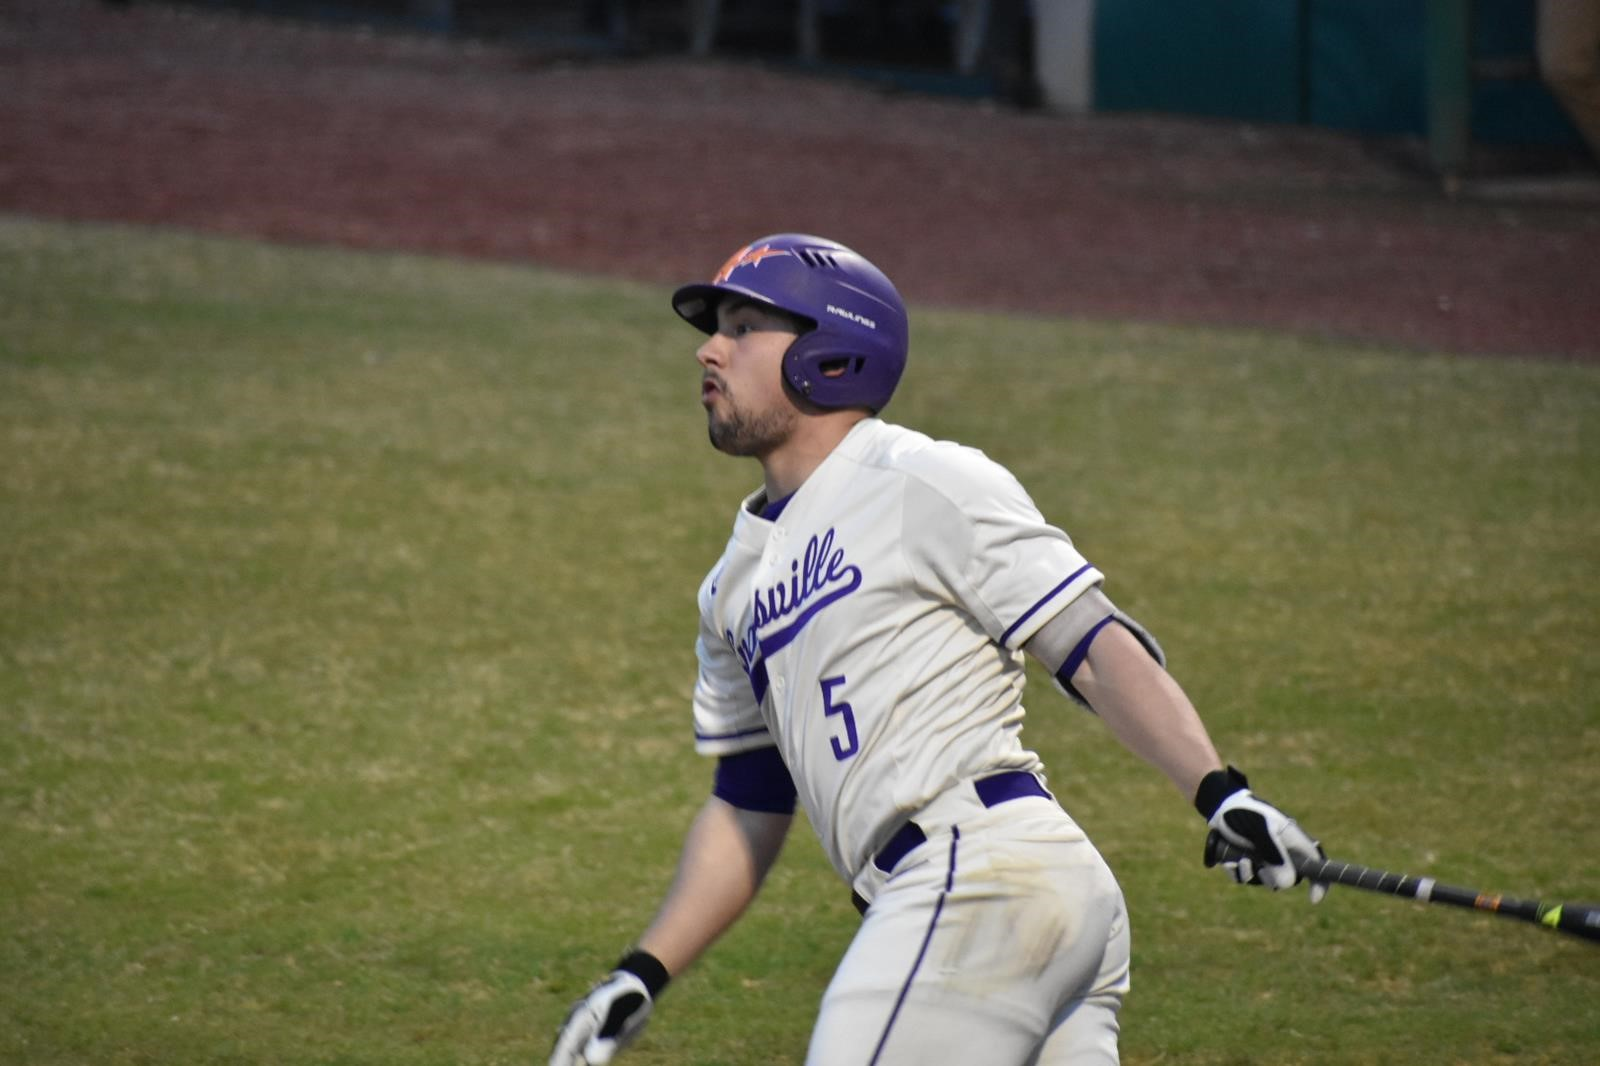 Ontario Blue Jays alum Matthew Jones (Bowmanville, Ont.) had four hits, four walks and three RBIs in four games for the Evansville Purple Aces. Photo: University of Evansville Athletics